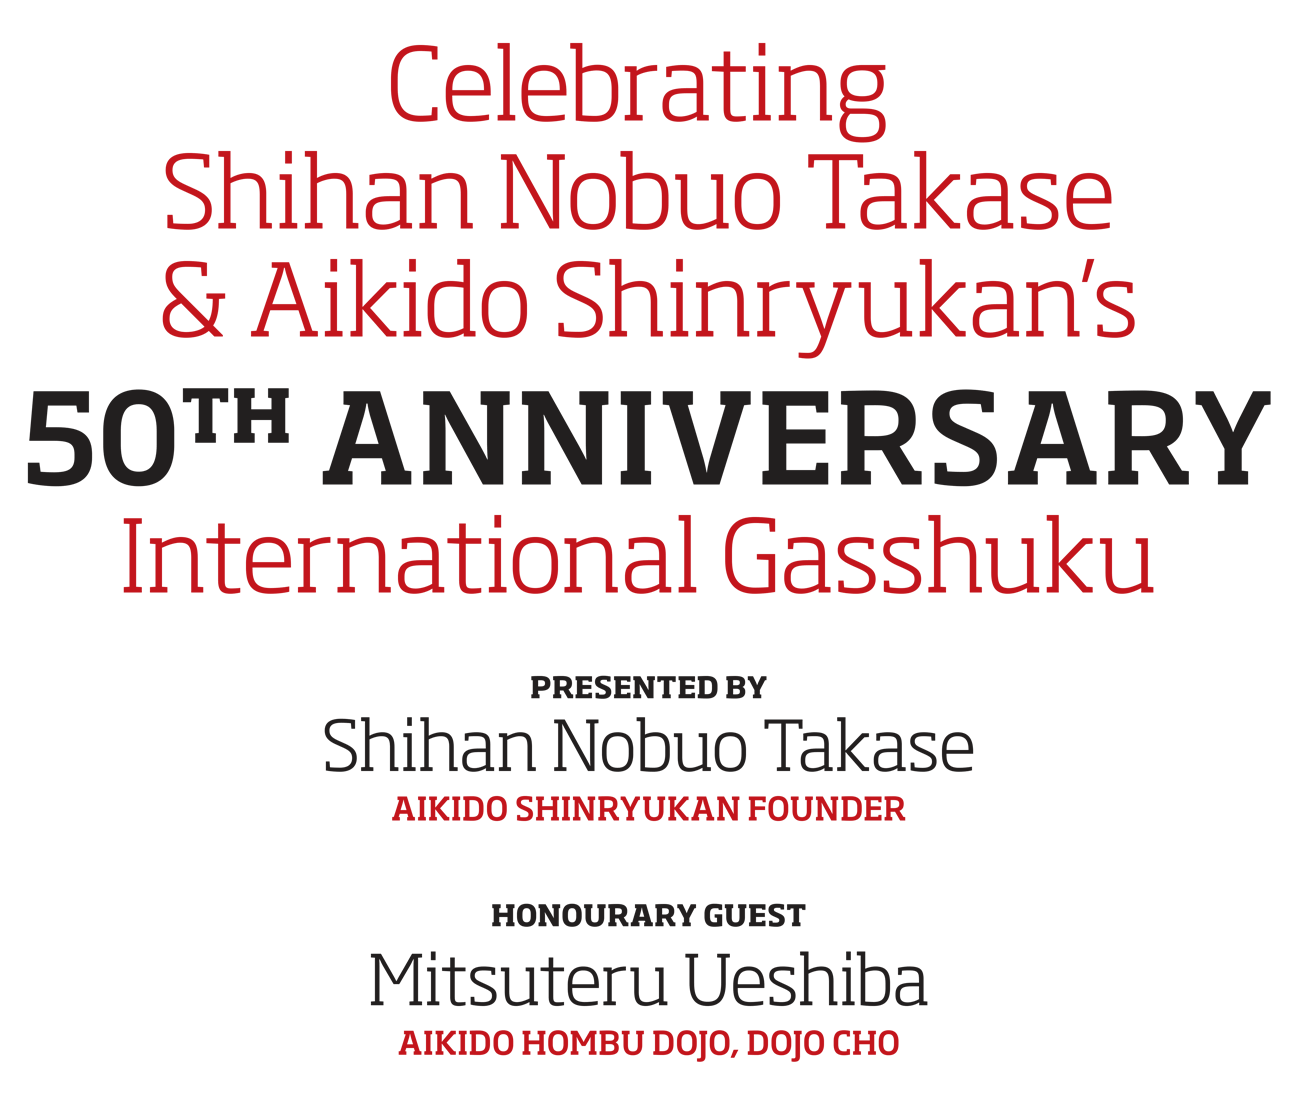 50th Anniversary International Gasshuku